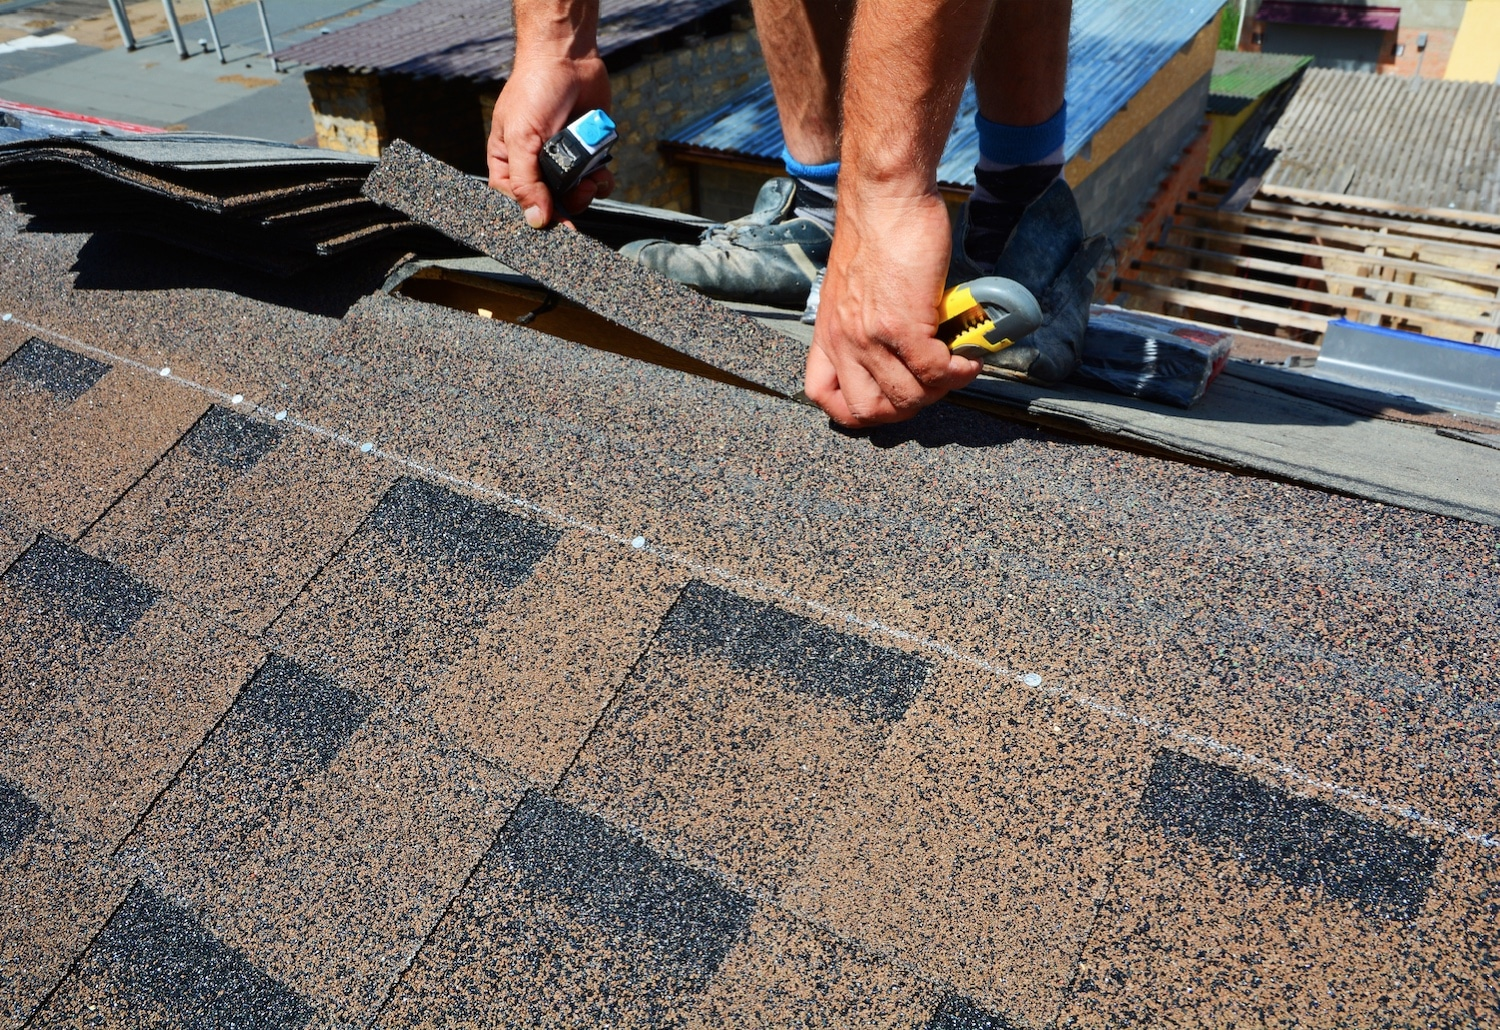 Roof Repair in Phoenix, Shingles Repair Phoenix, www.yourphoenixhandyman.com